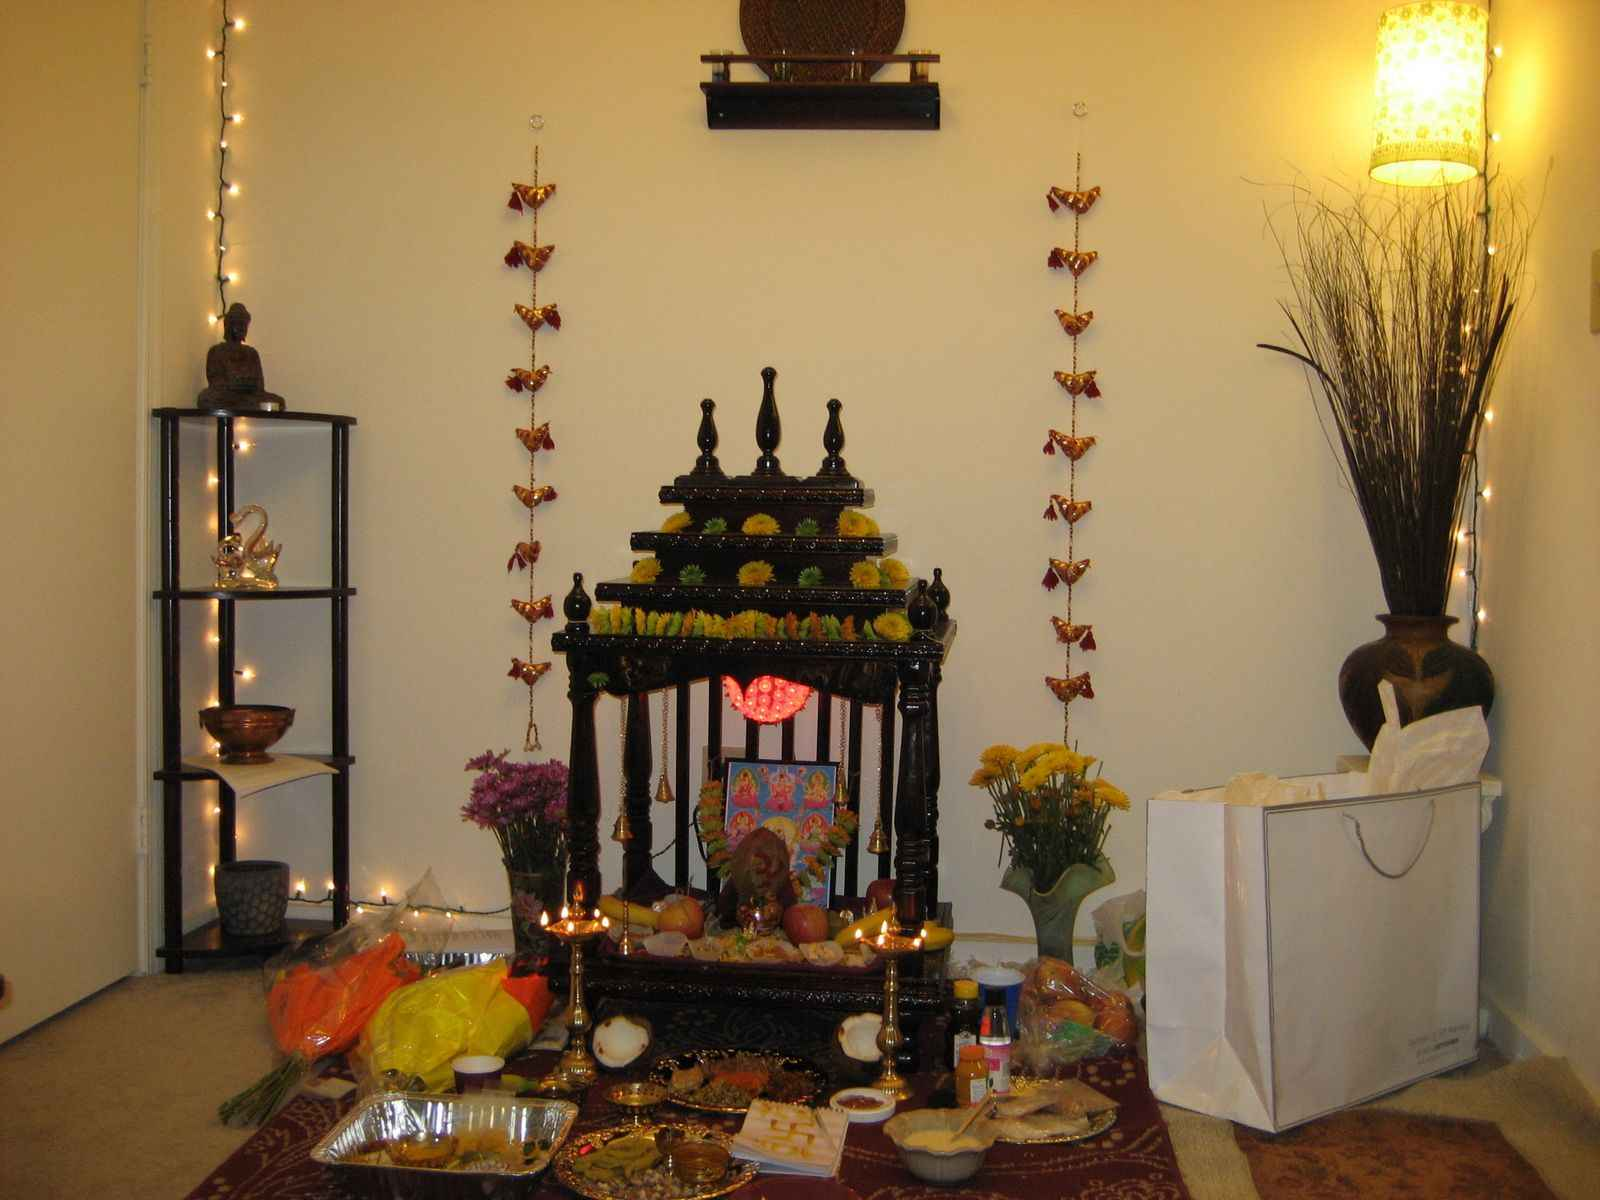 Step by step guide to diwali puja how to do diwali puja for Simple diwali home decorations